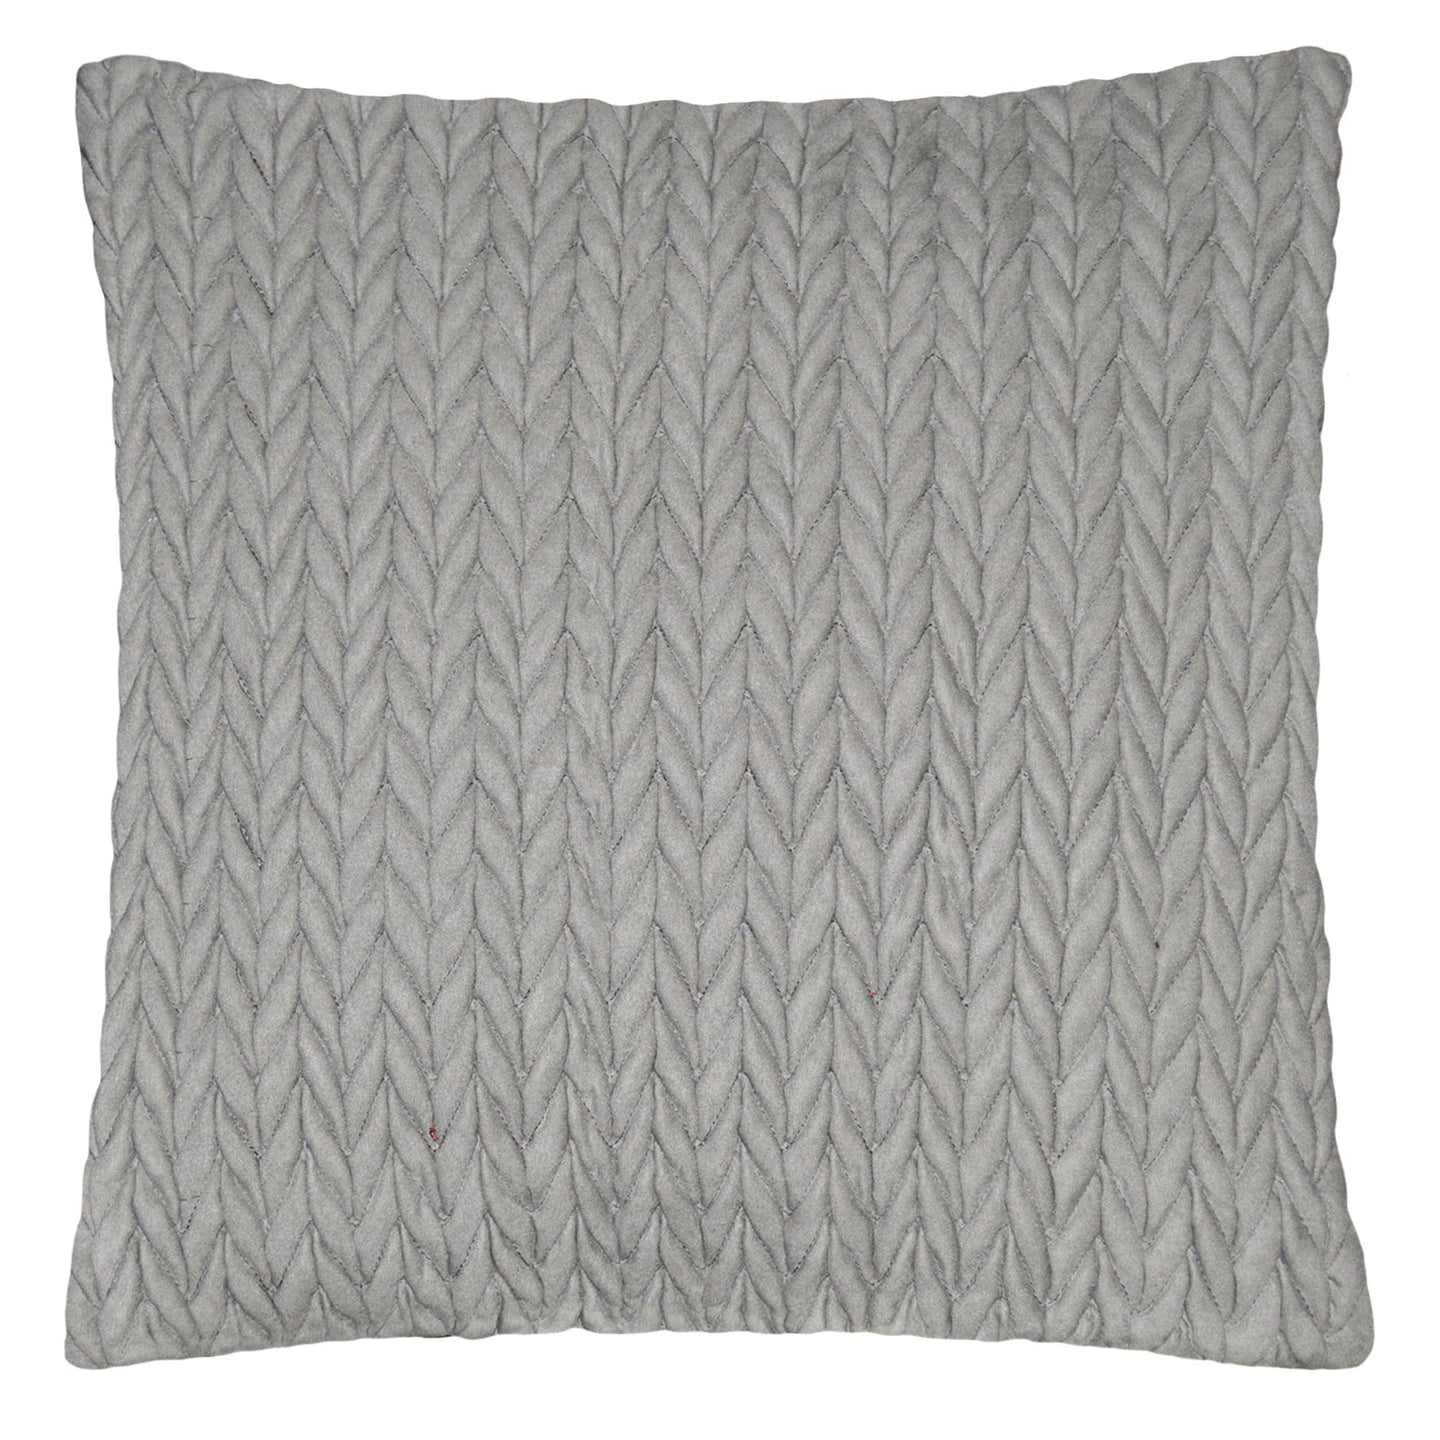 Suede Pucker 18 Inch Square Decorative Pillow